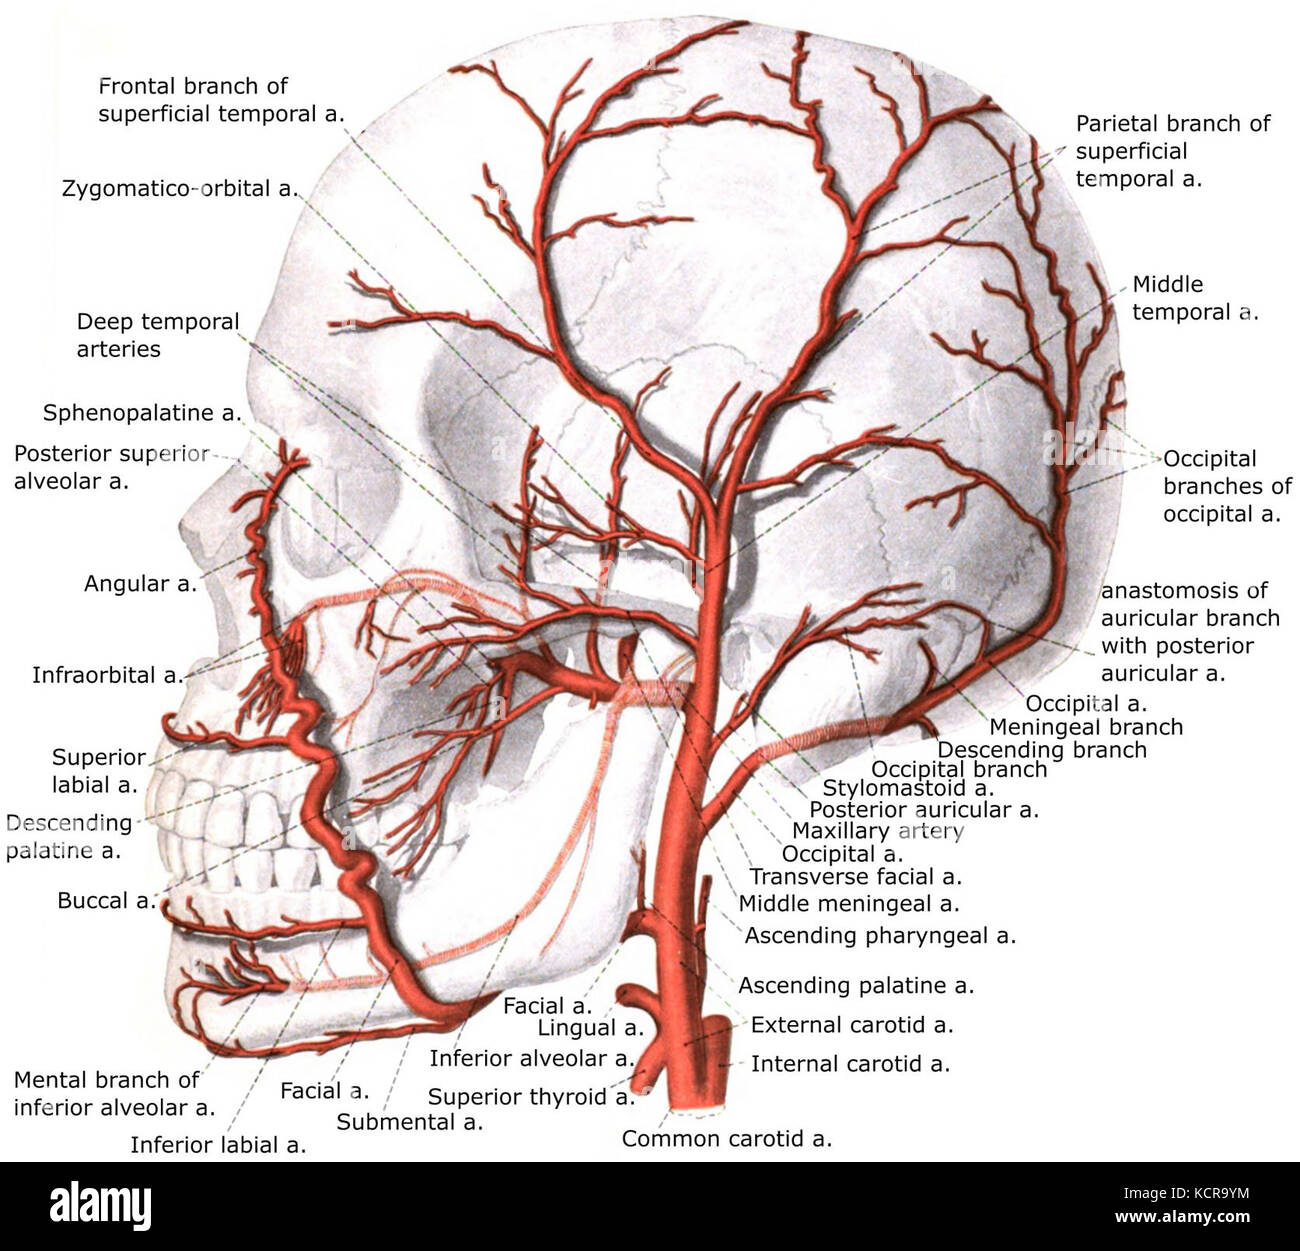 External carotid artery with branches Stock Photo: 162781912 - Alamy